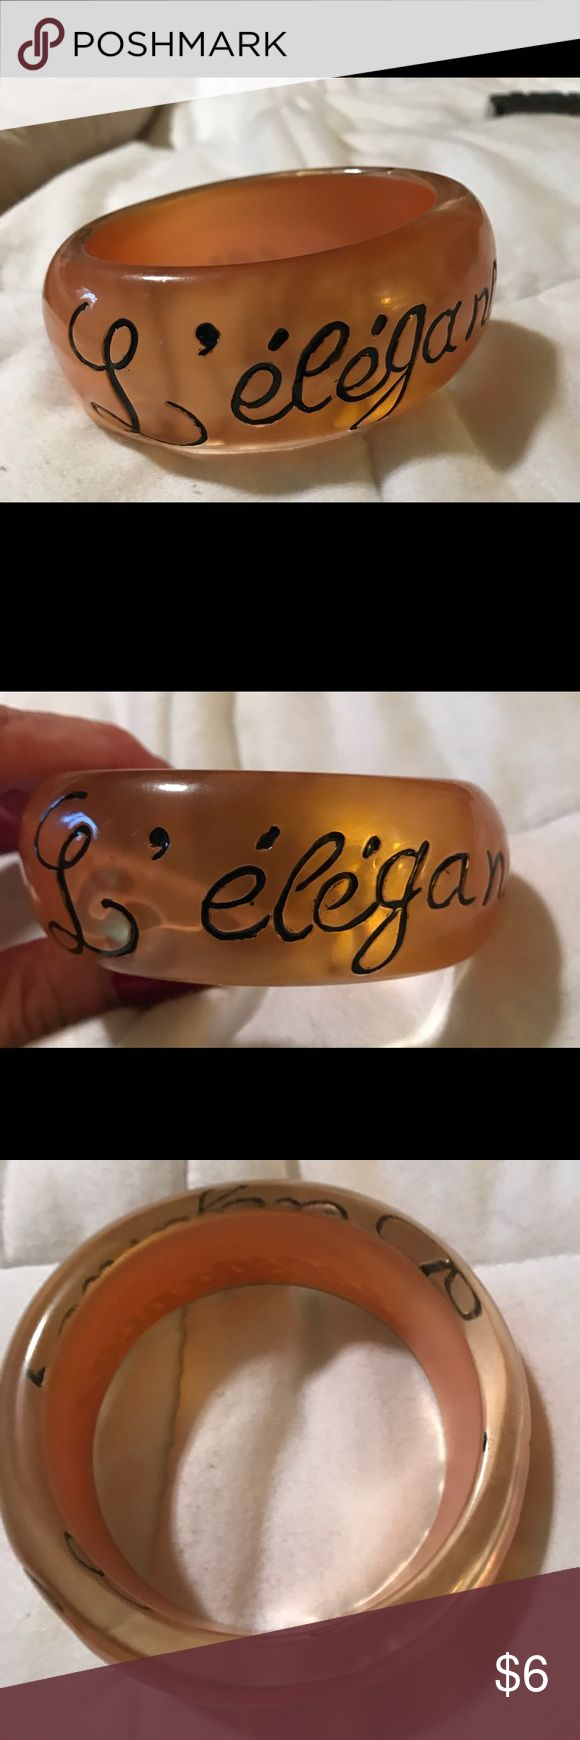 Gold Bangle Bracelet Ooh la la with this bracelet. Gold tone plastic resin material with scripted letters spelling L'elegance,  Worn only one time in great condition Jewelry Bracelets